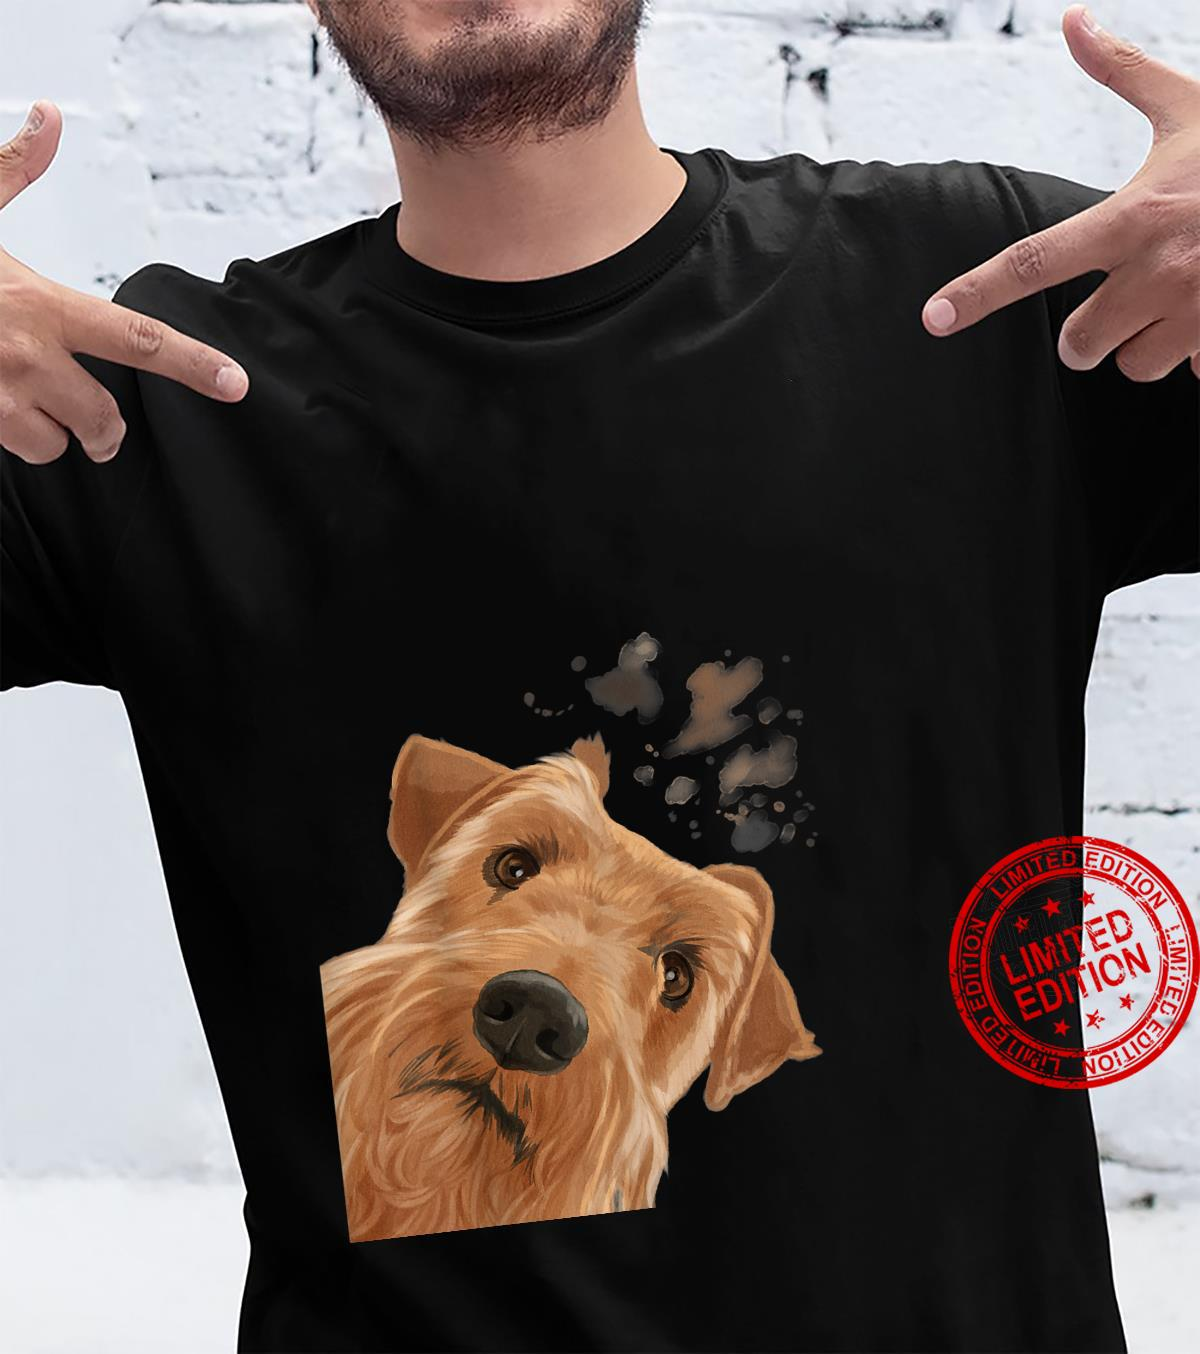 Funny Curious Dog Irish Terrier Shirt